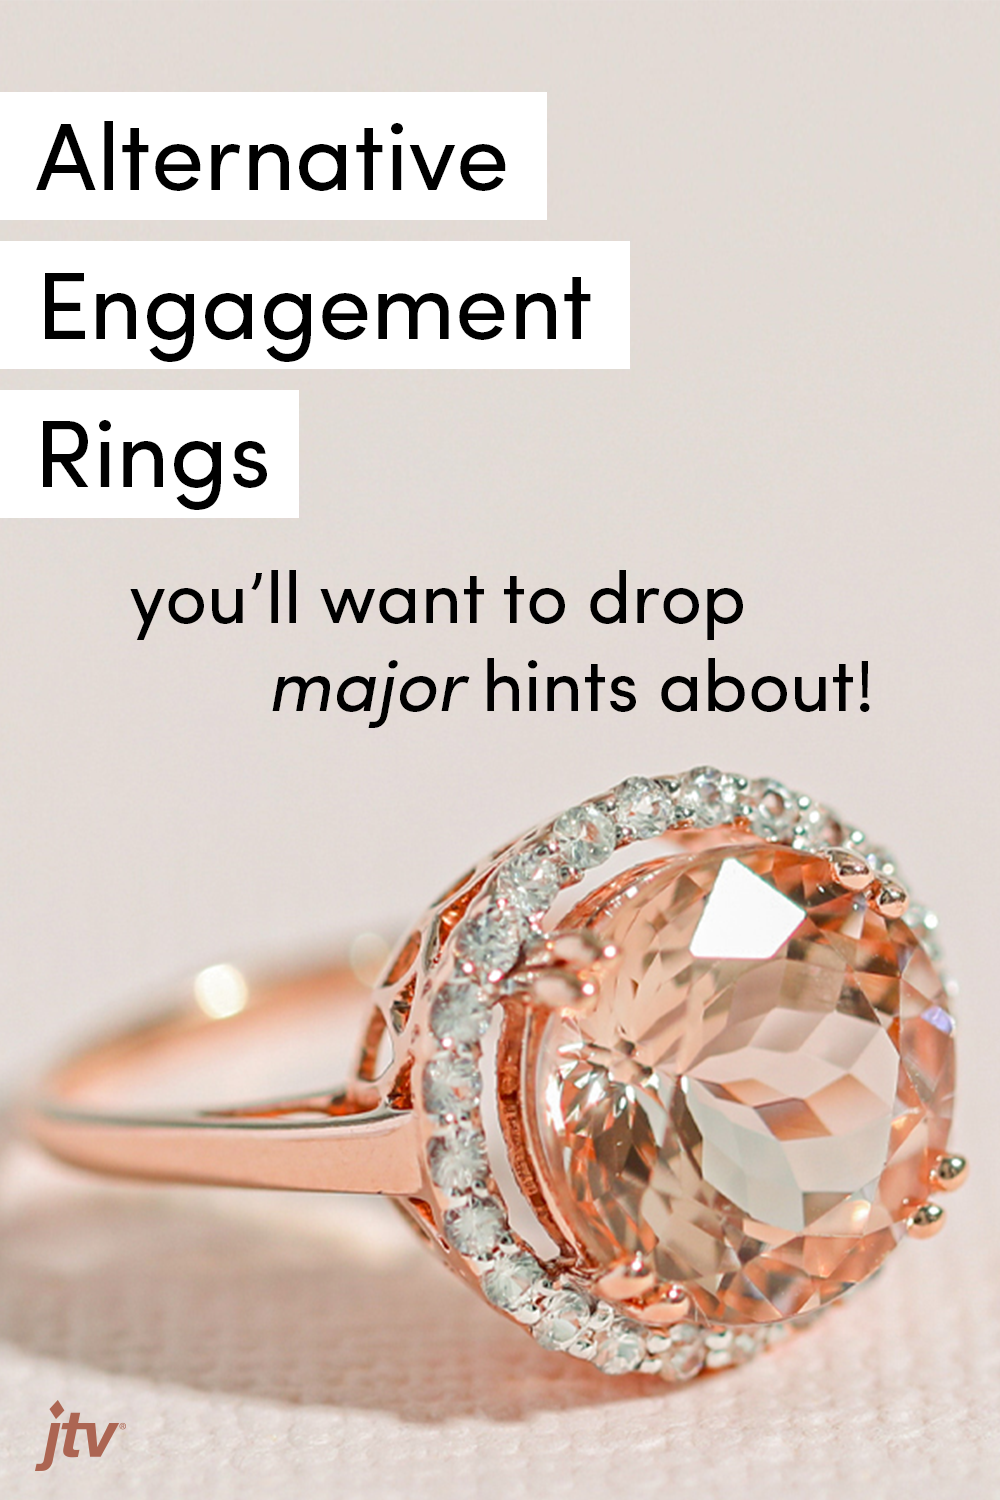 You'll want to drop major hints about these!